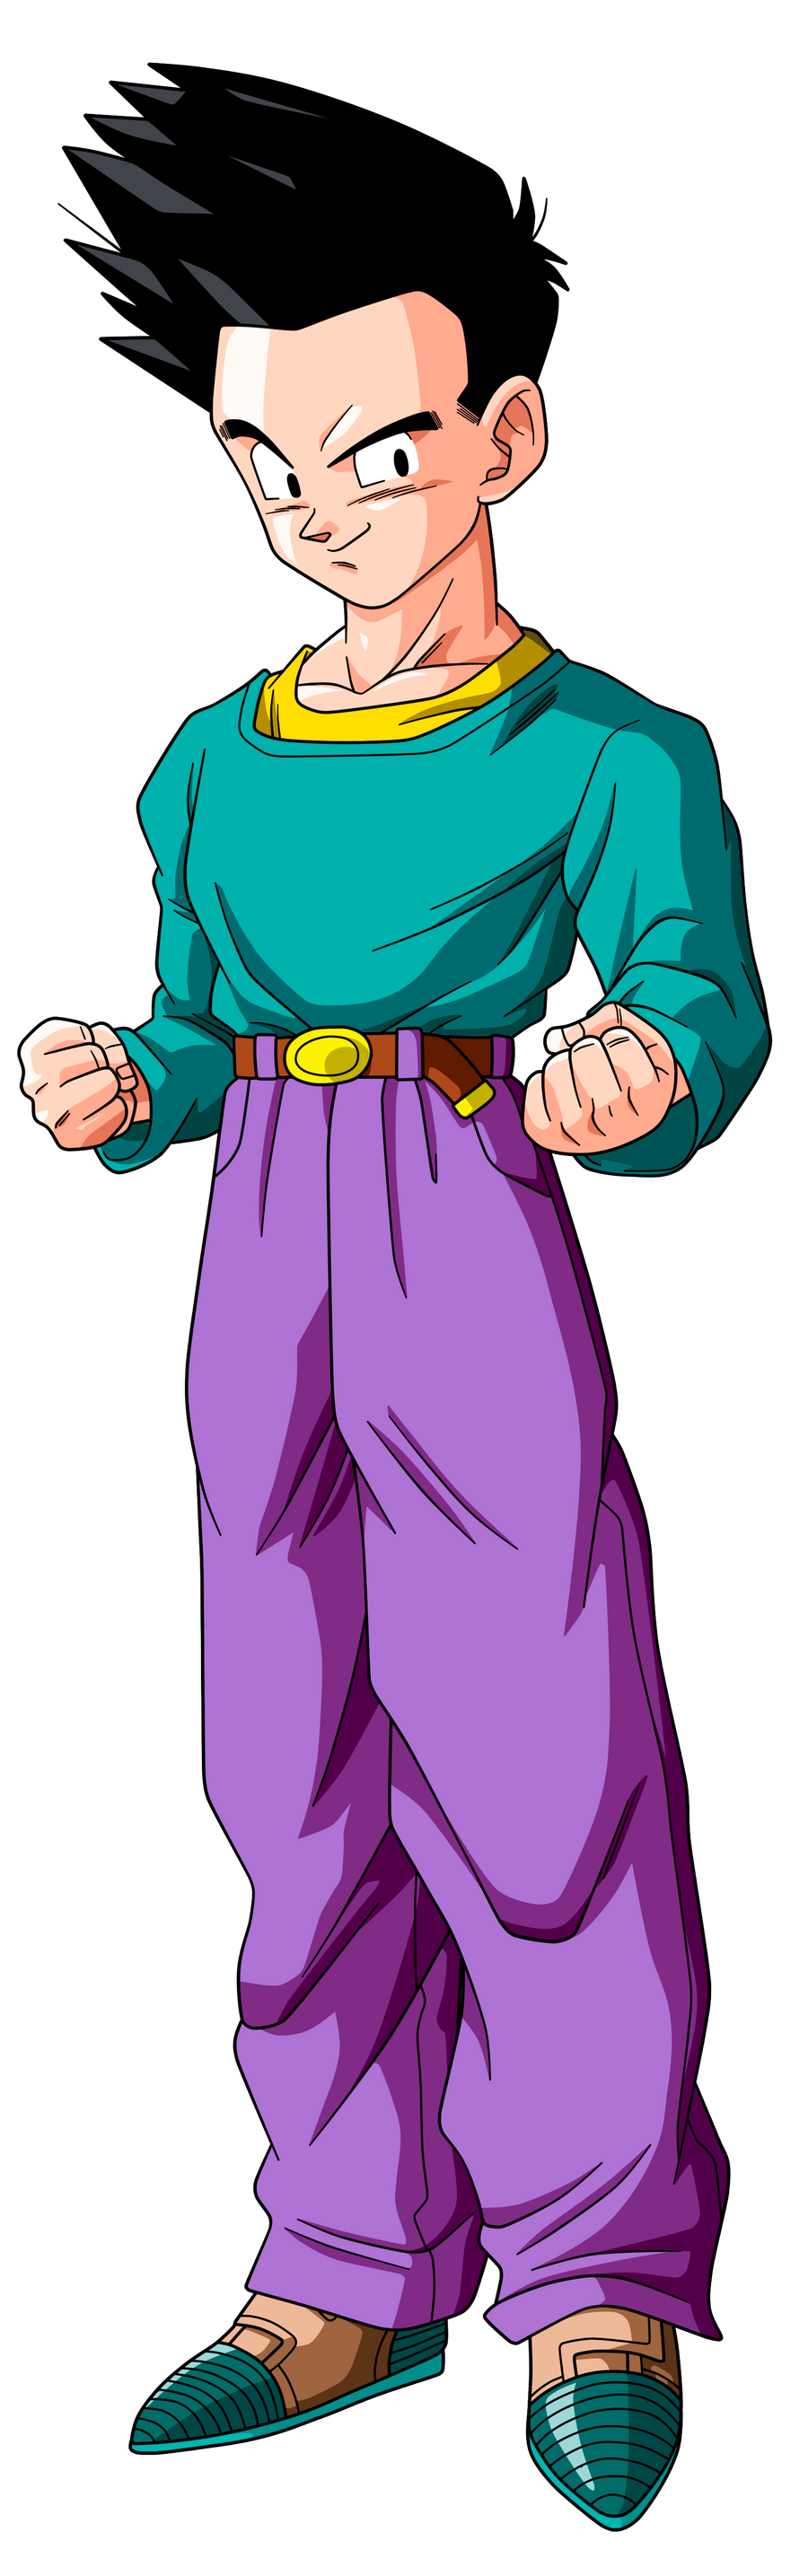 Goten Gt by SergioFrancZ on DeviantArt - 657.7KB